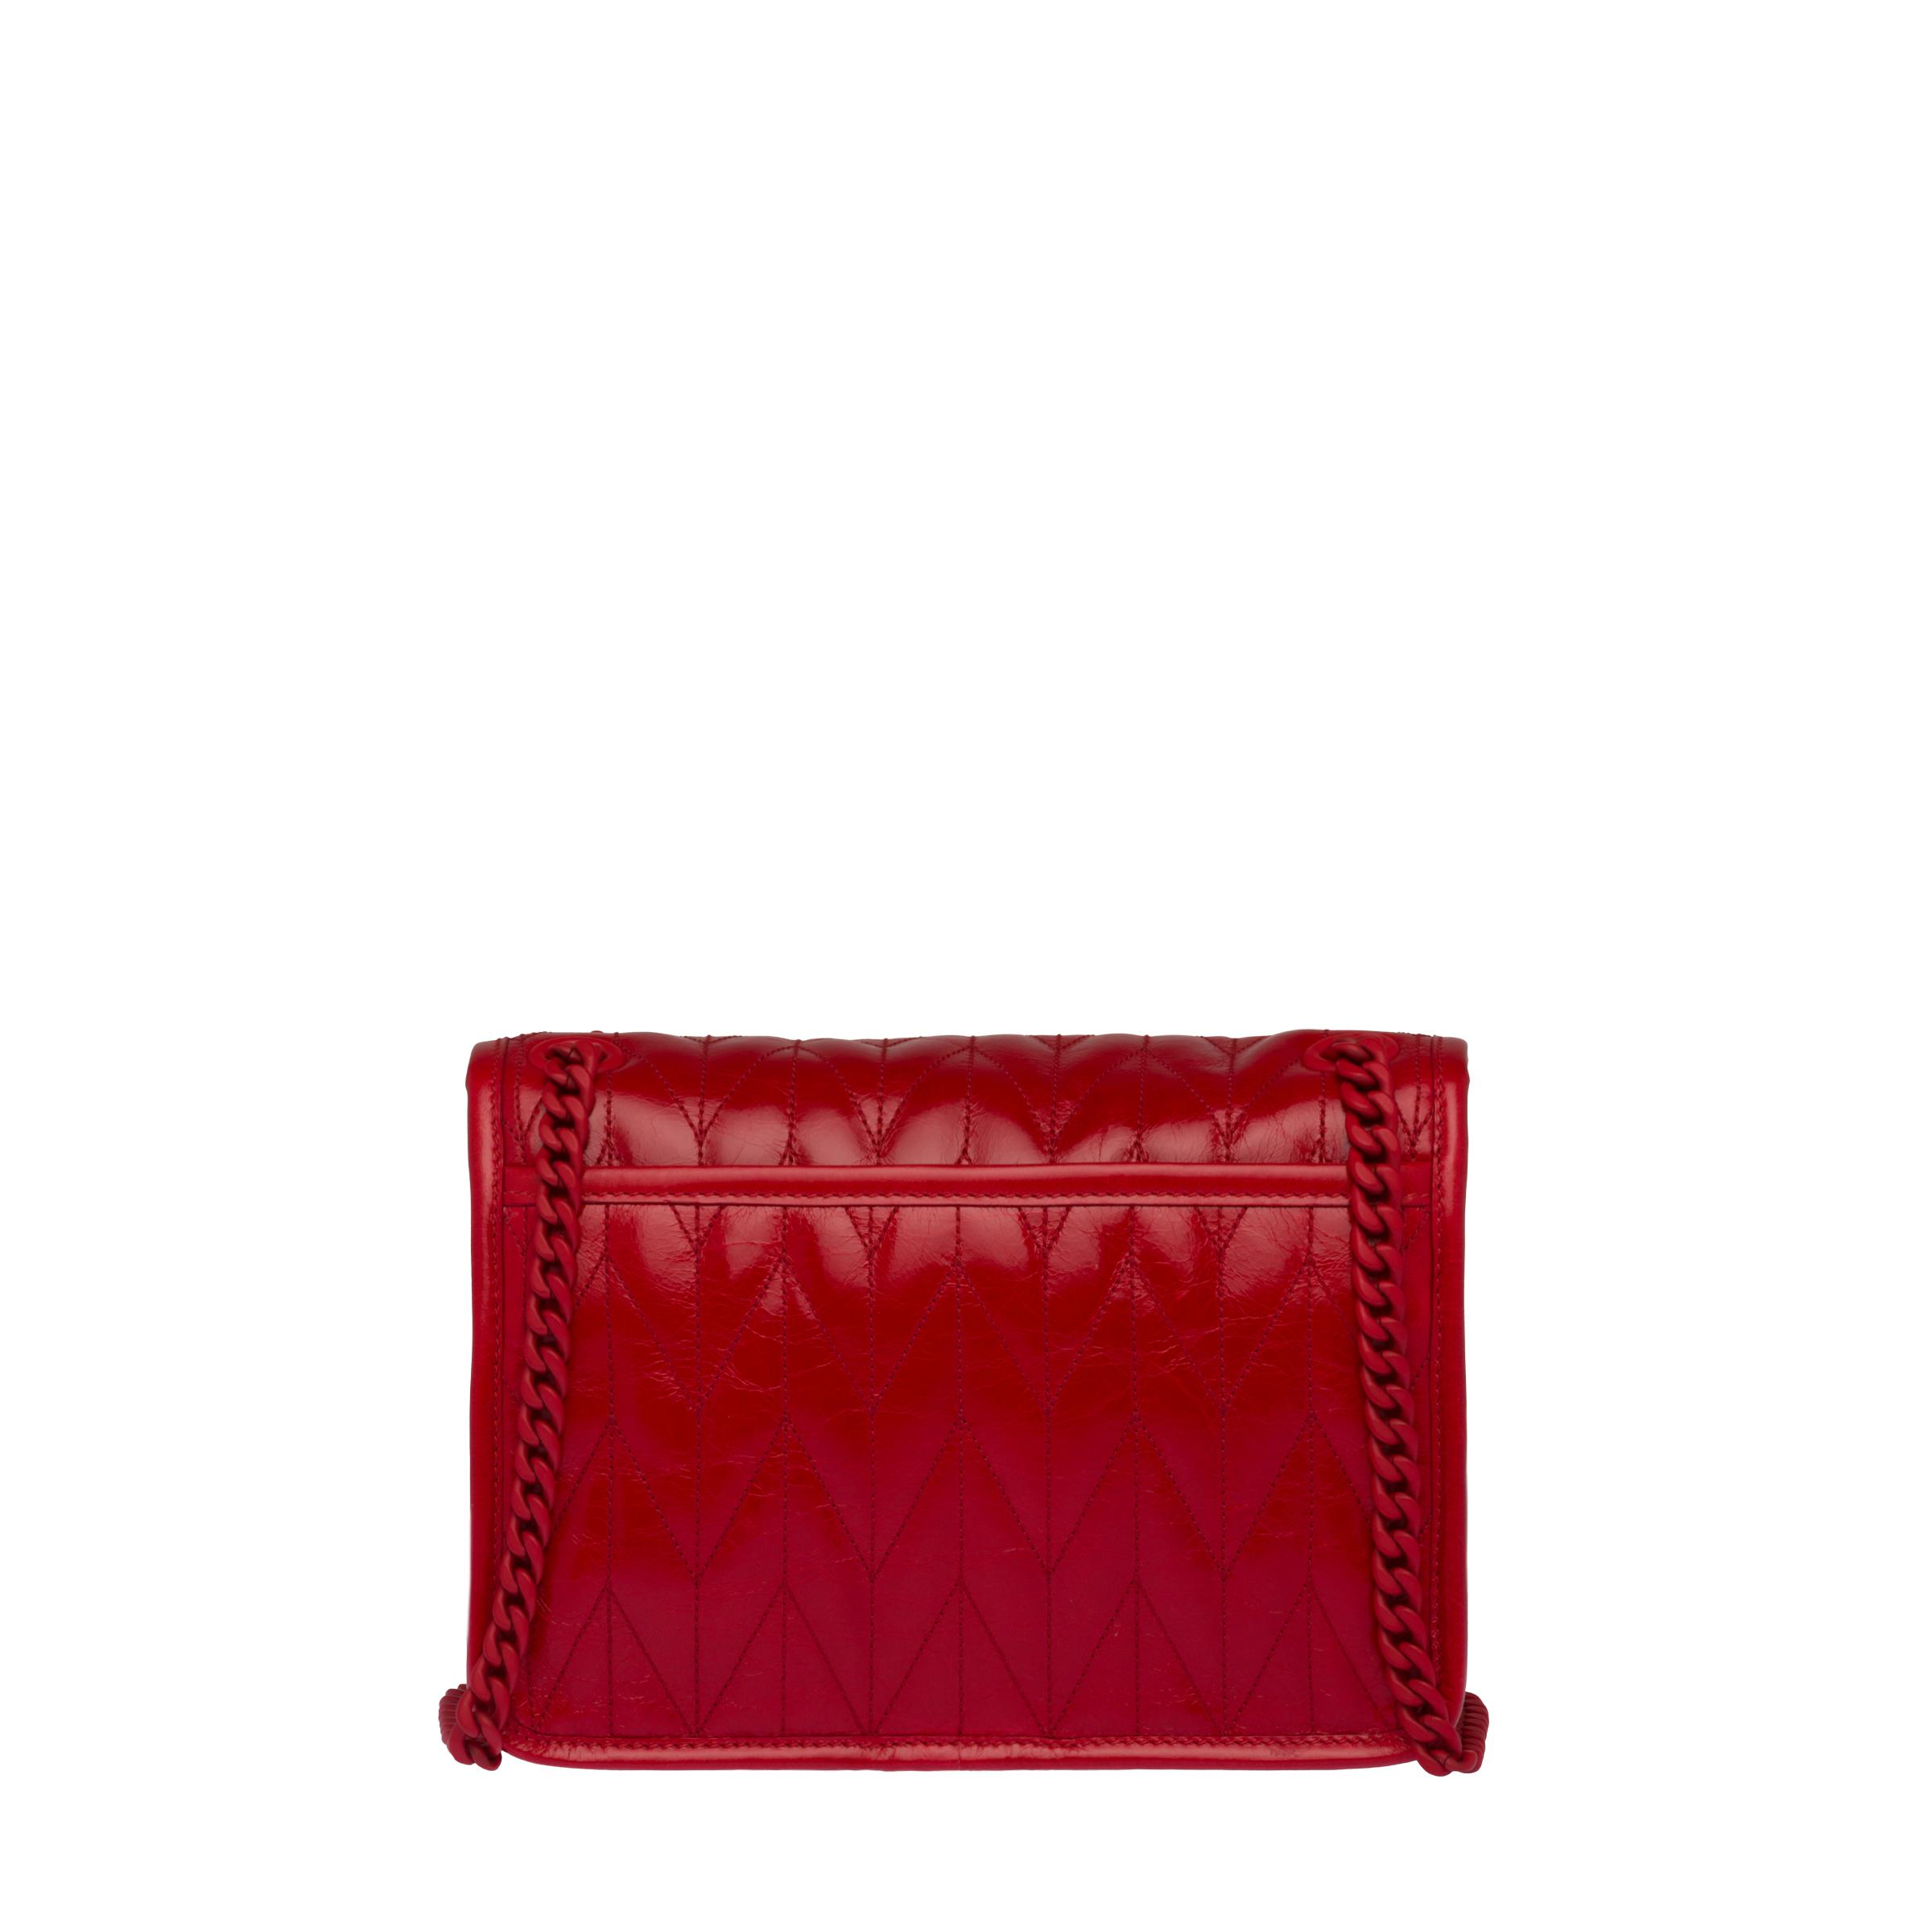 Quilted Shiny Leather Shoulder Bag Women Red 3